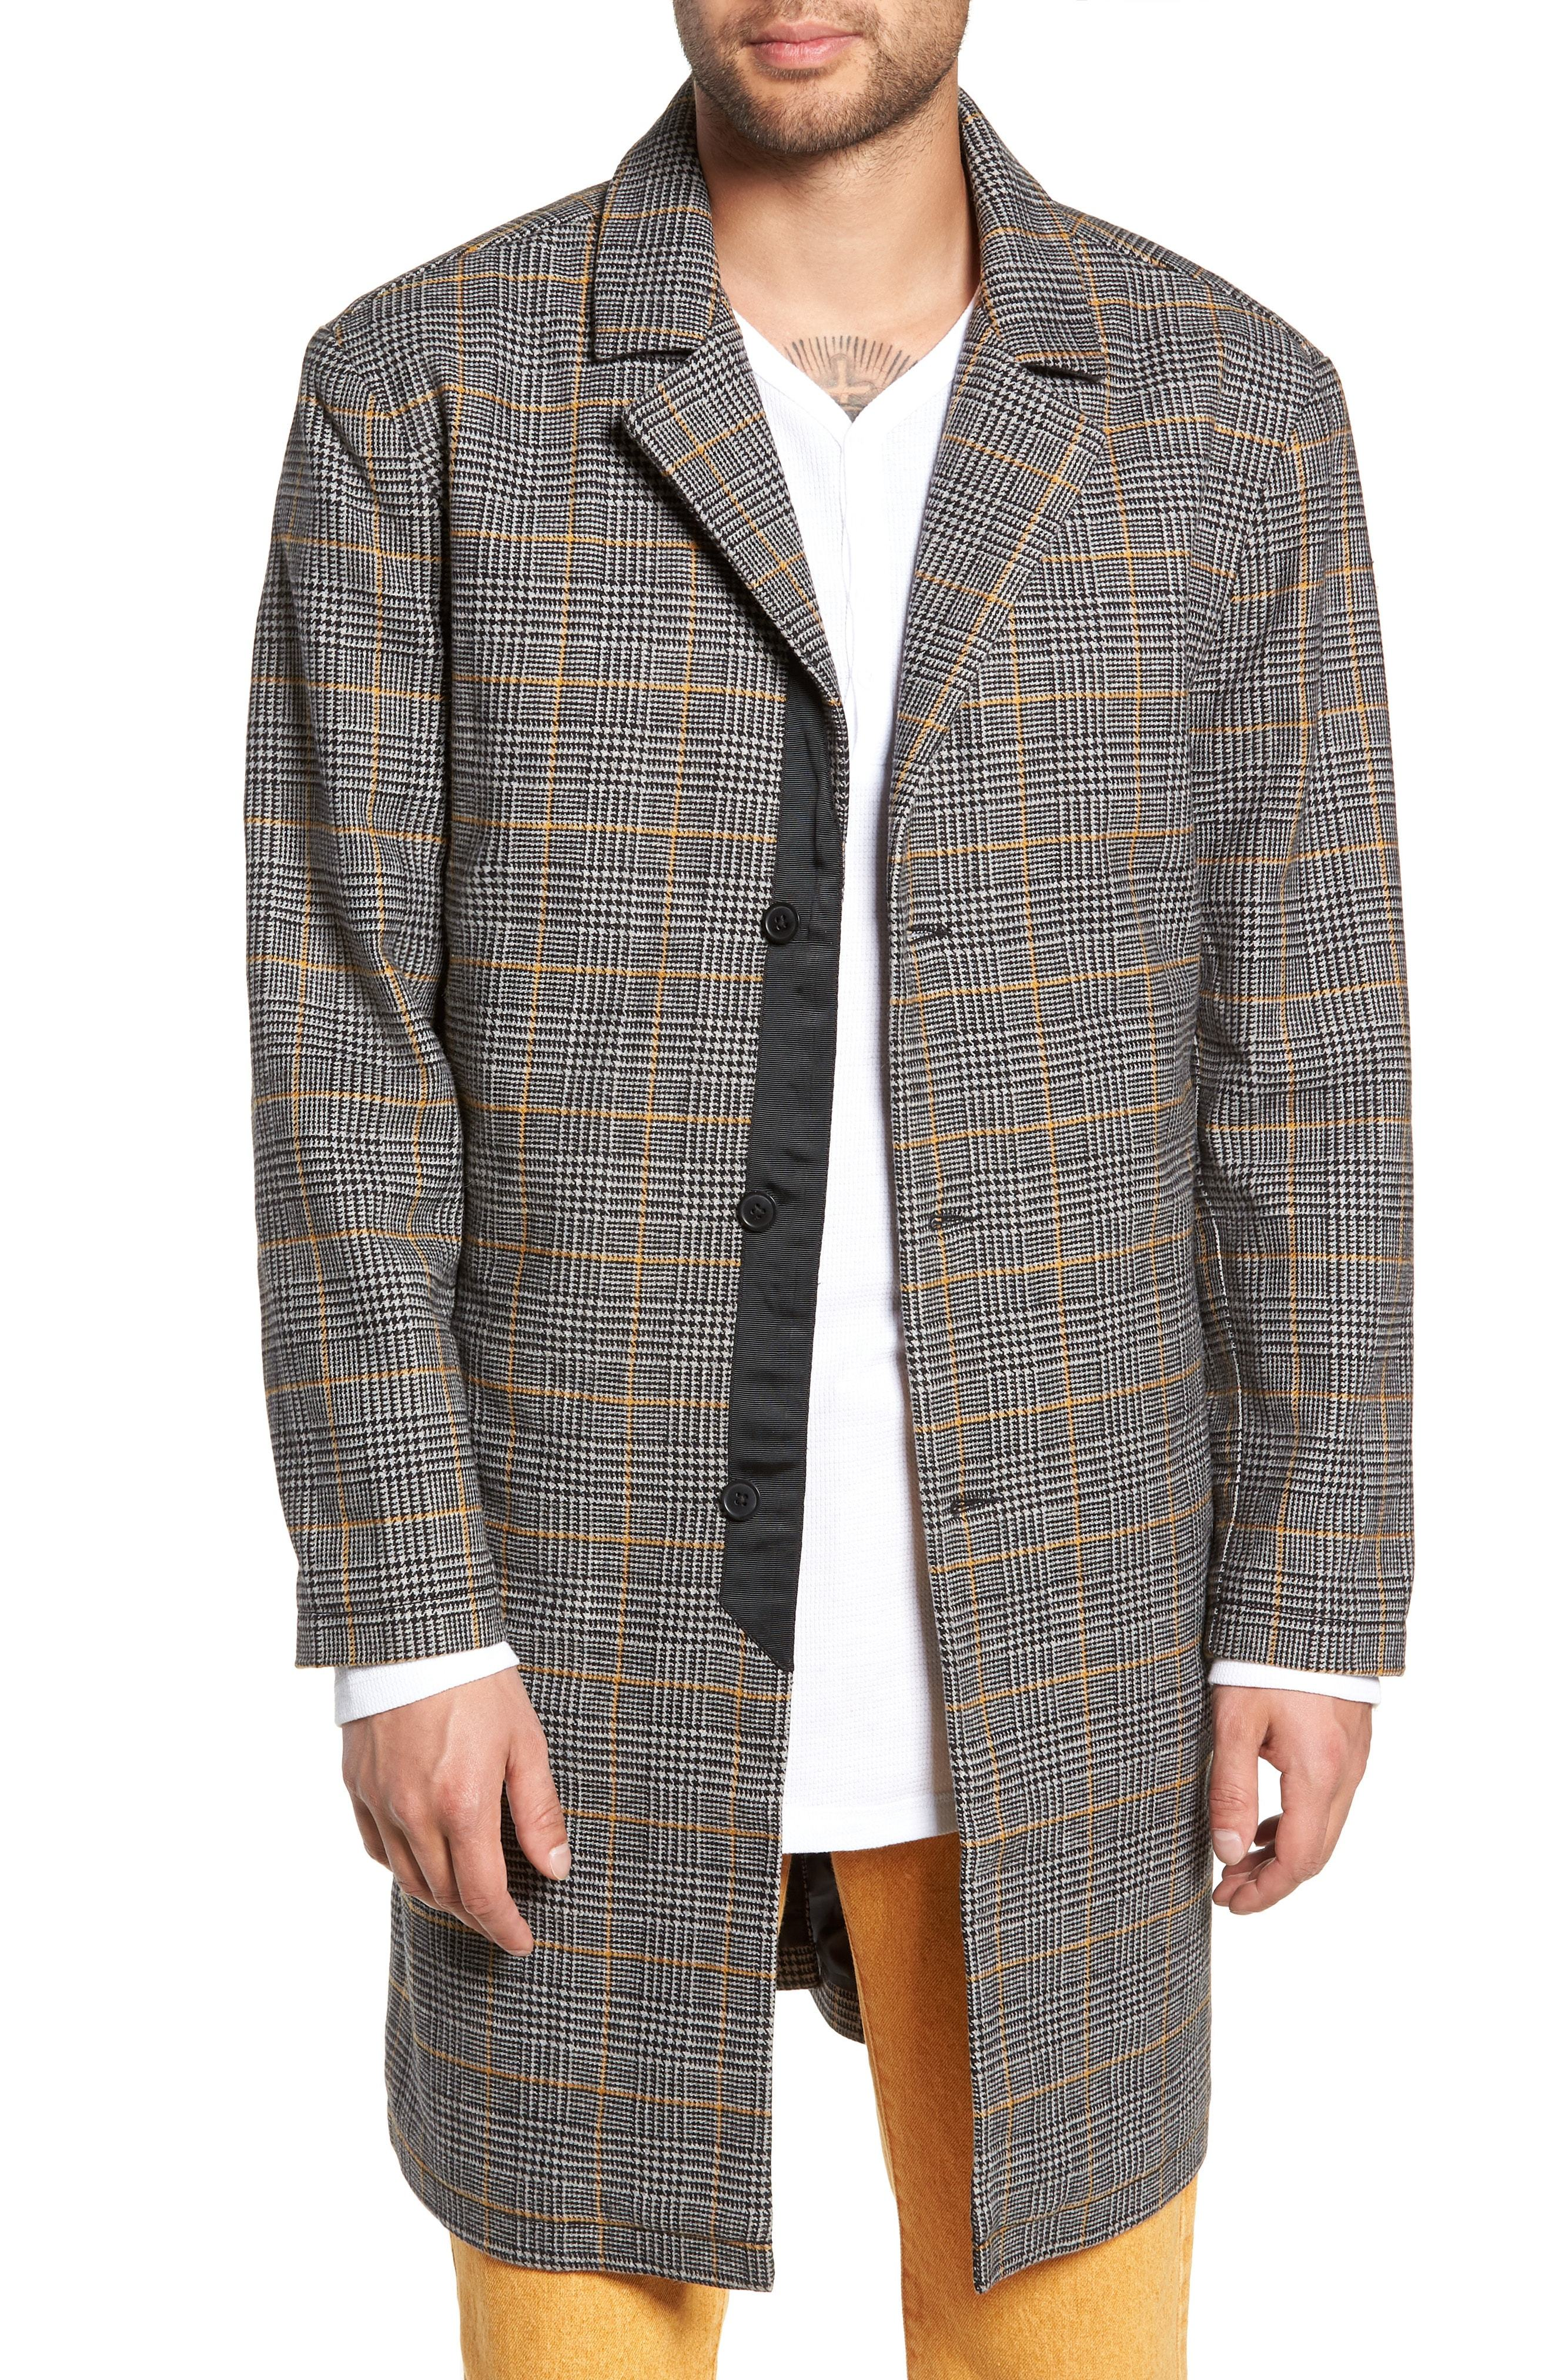 The Rail Houndstooth Plaid Overcoat